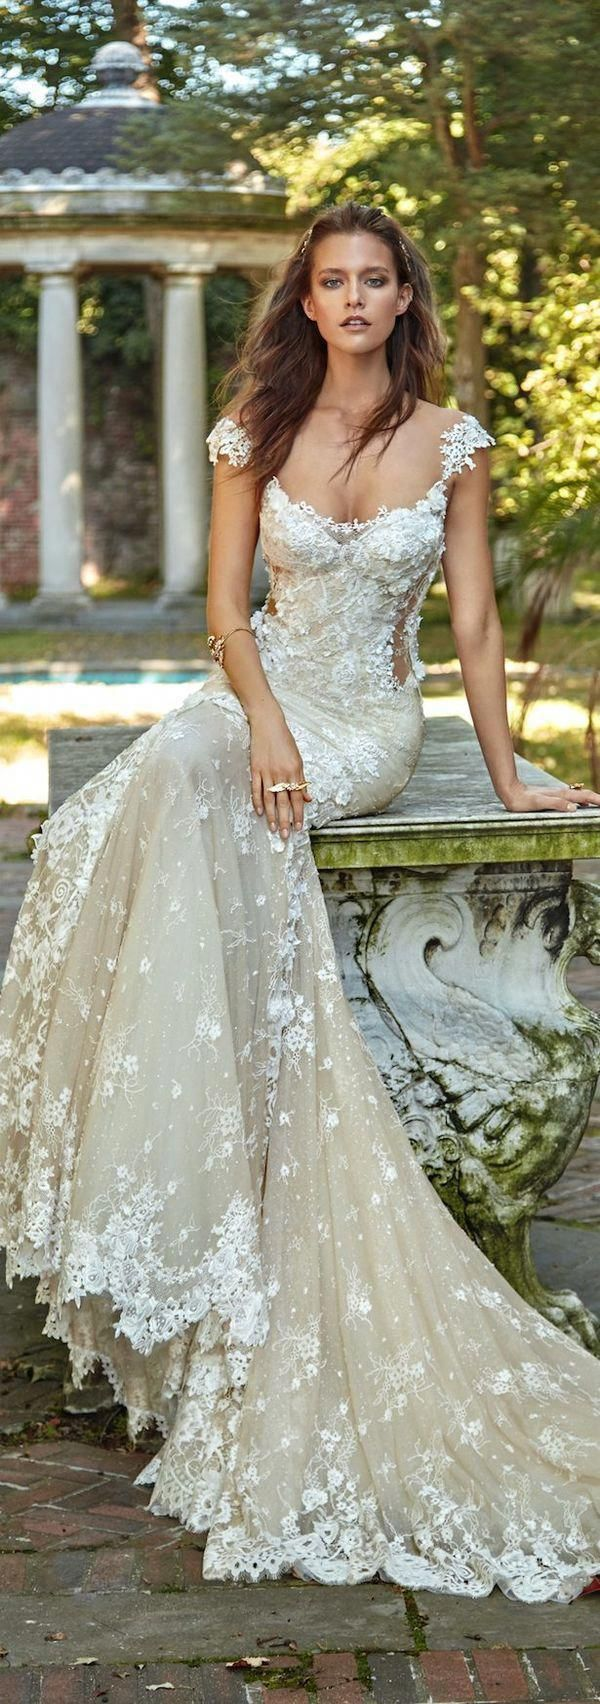 This romantic wedding dress has so much charm. From the lacy cap sleeves to the ivory tone of the underlay, the mermaid wedding dress shape emphasizes the drama of this dress and makes the sizable train a natural extension of the bride's look. #weddingdresses